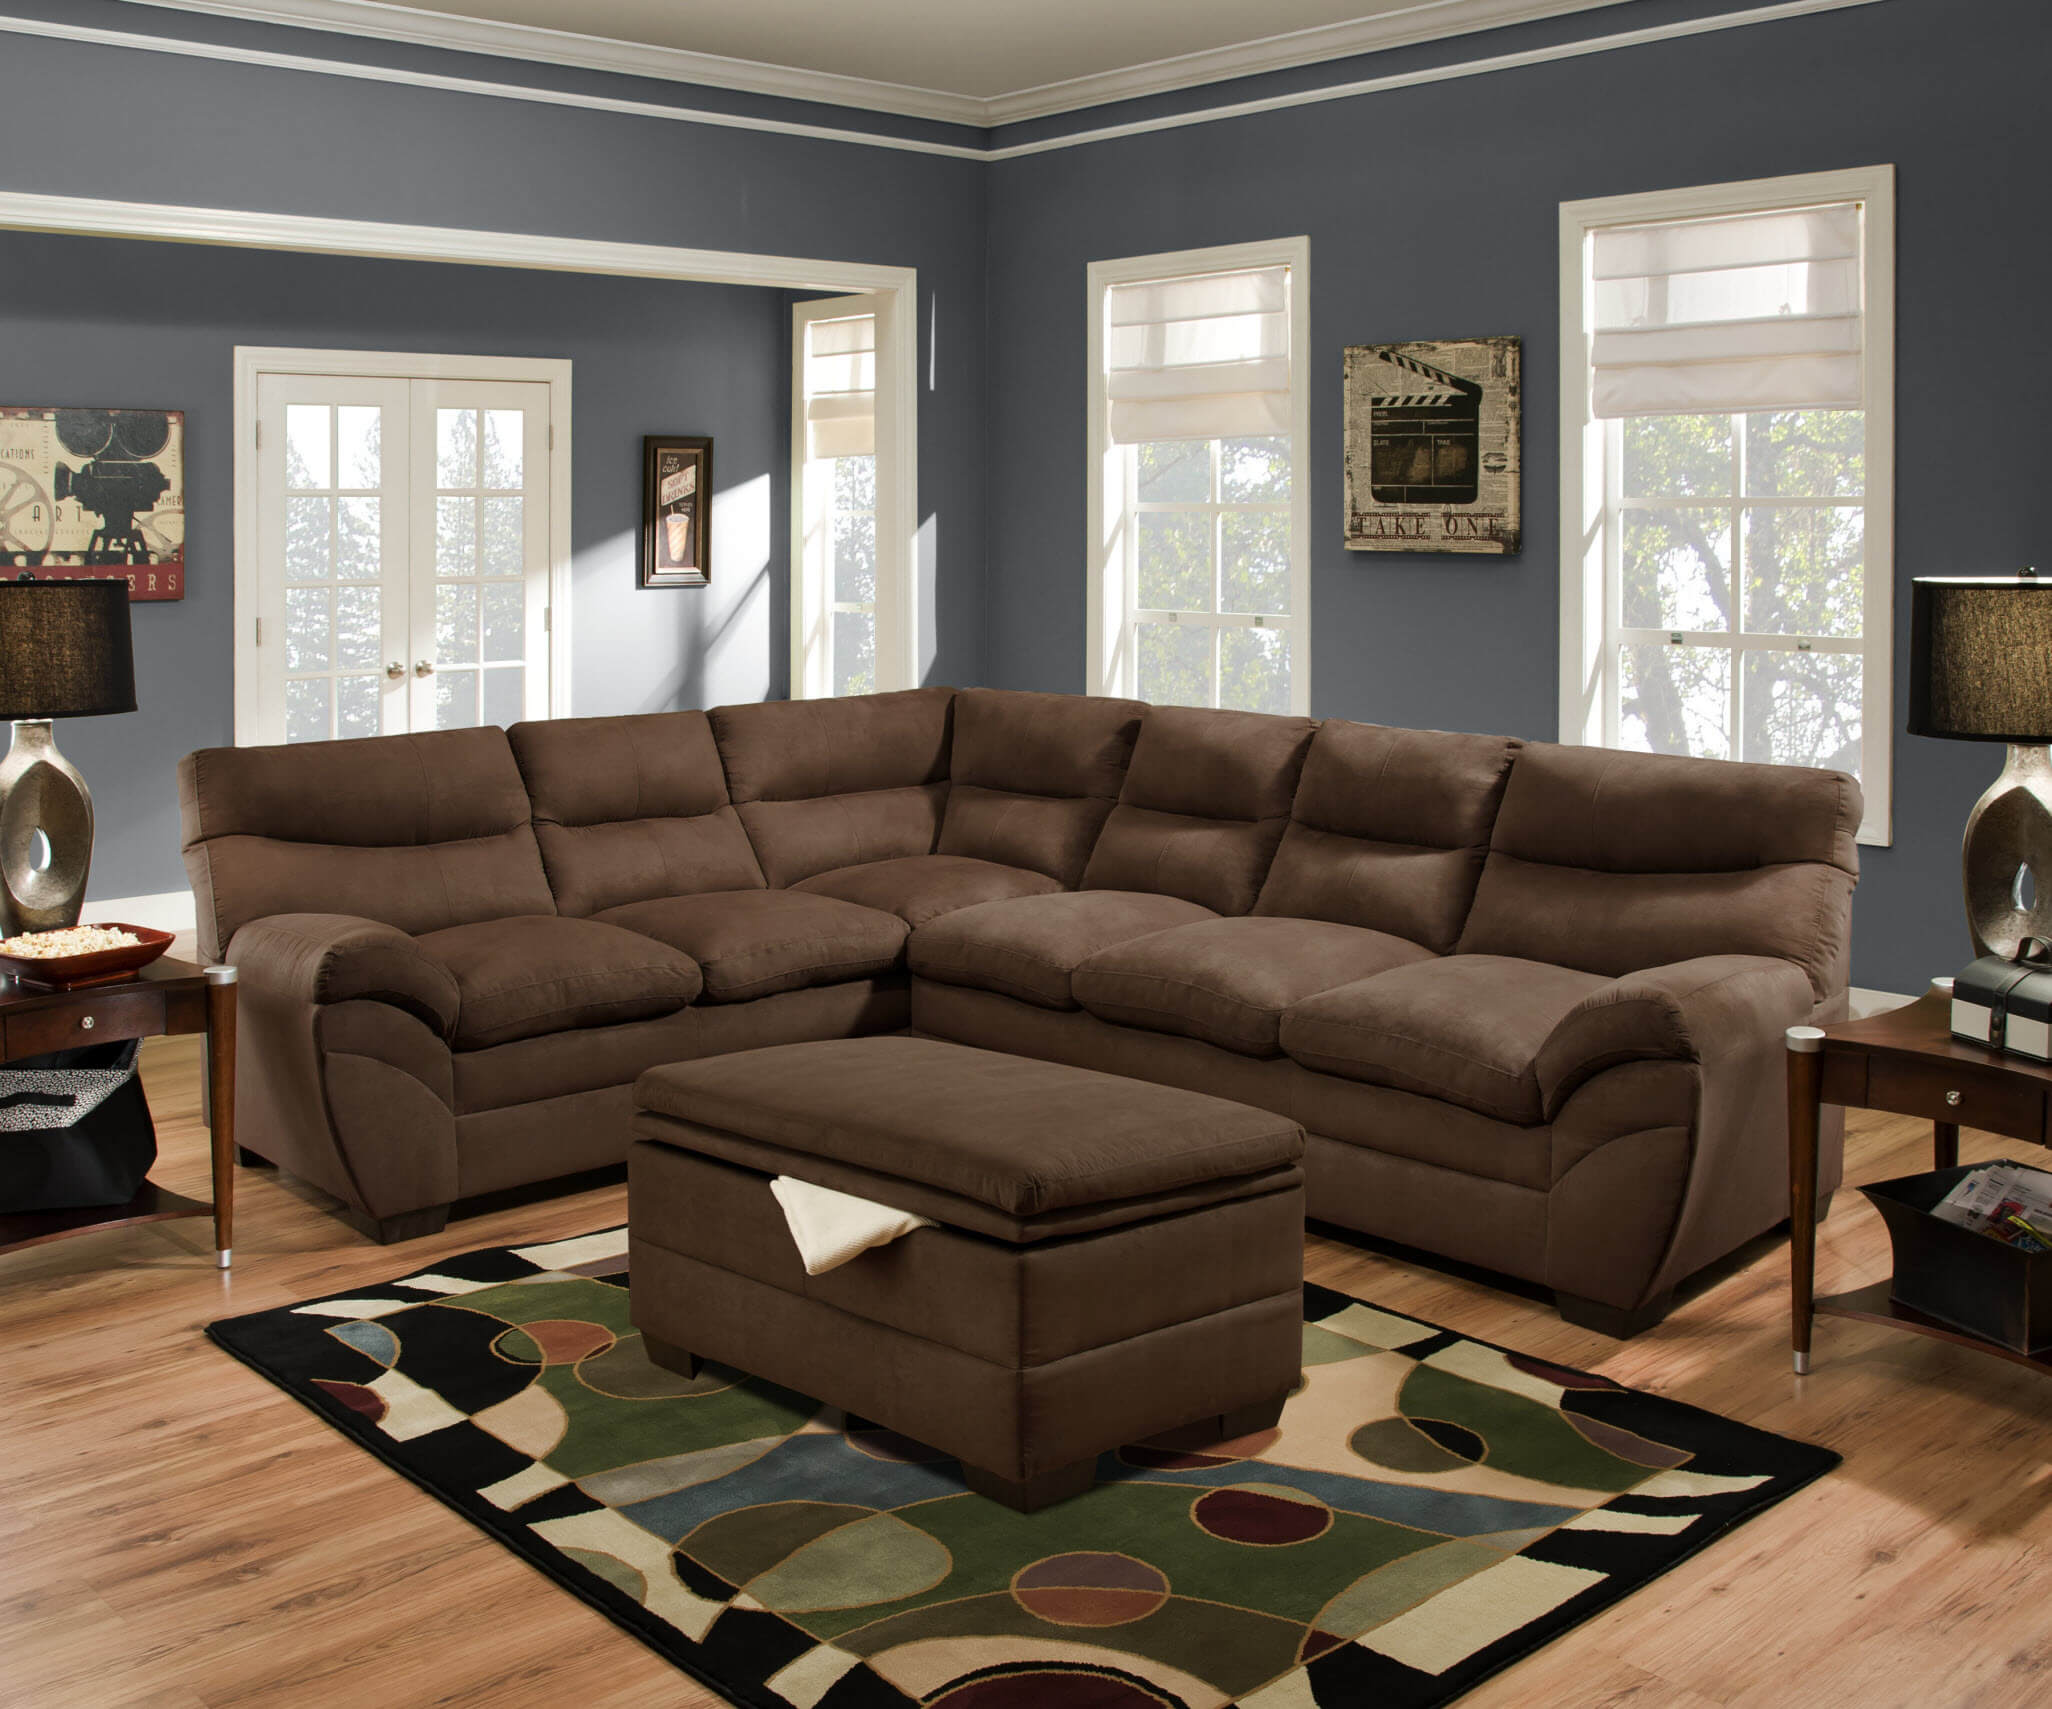 Sectional Sofa Sets : chocolate sectional - Sectionals, Sofas & Couches